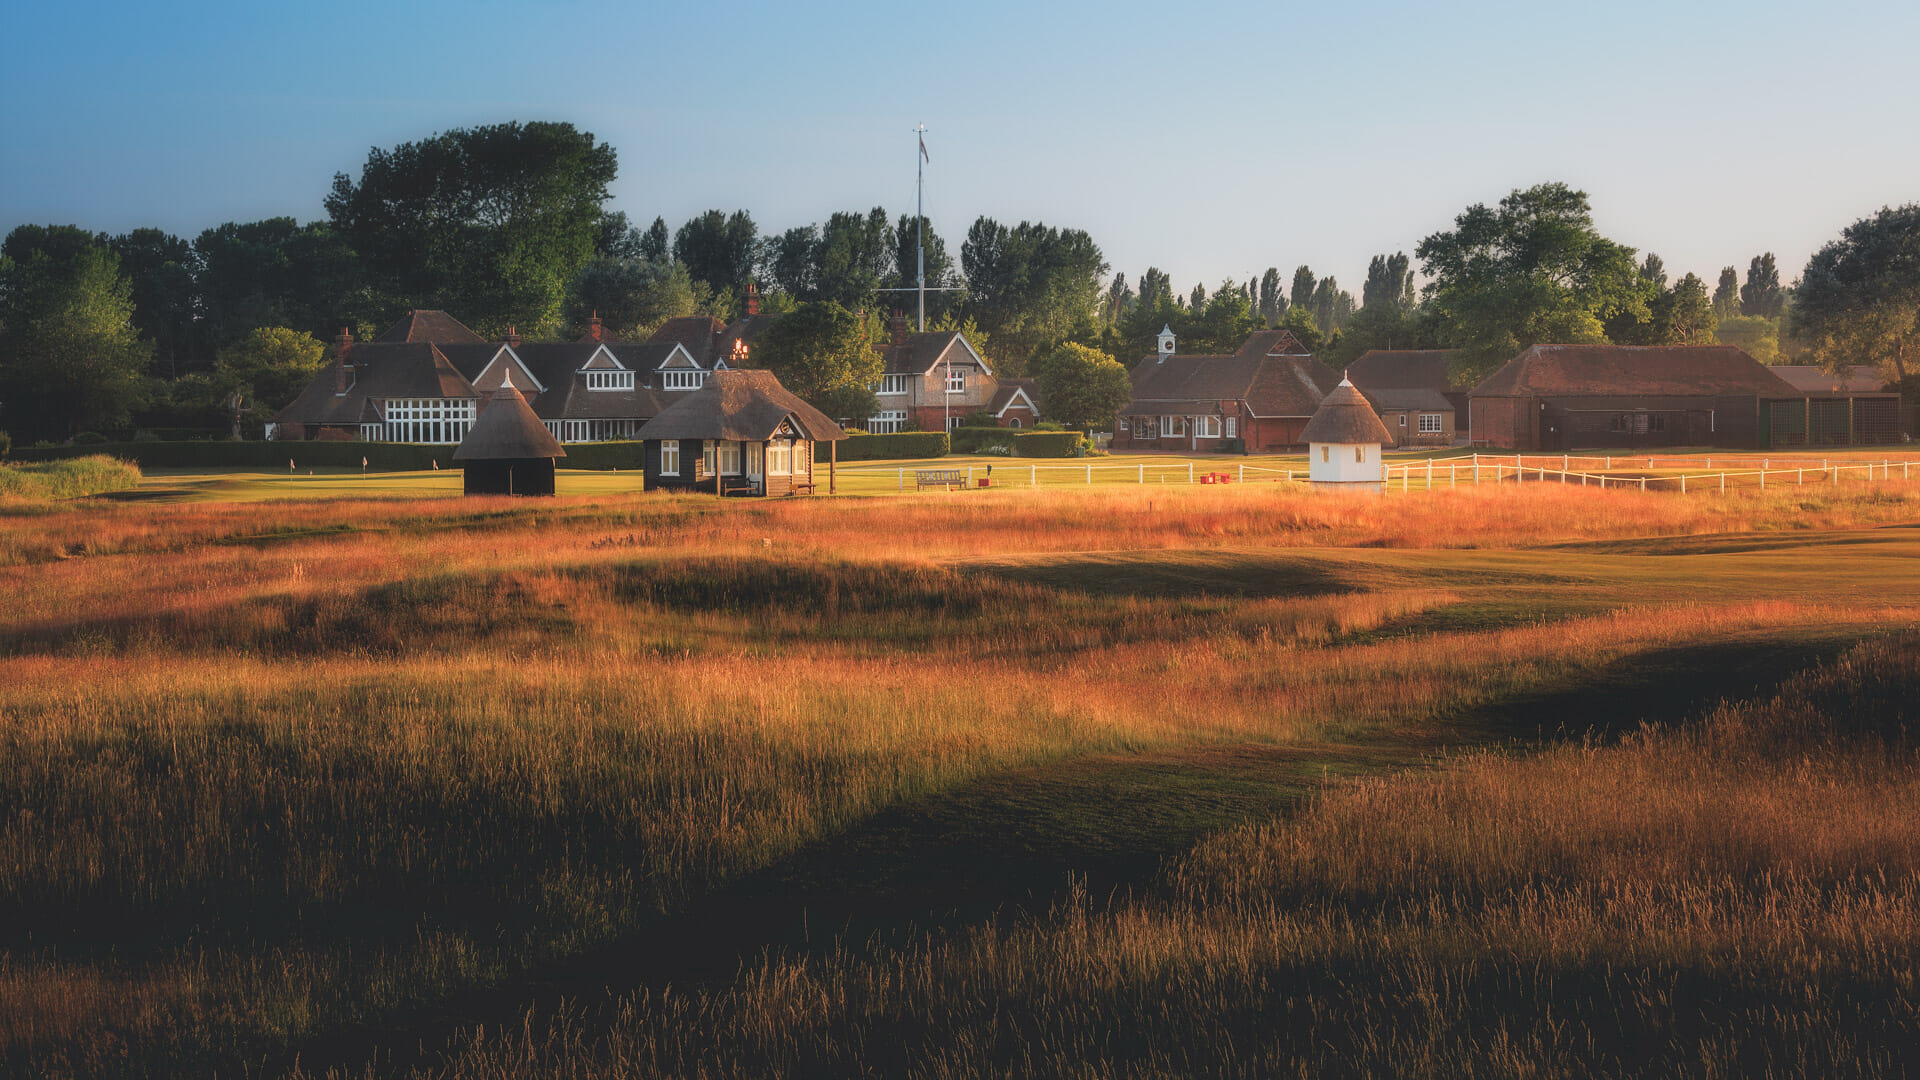 Image looking at the 18th hole and club buildings at Royal St. George's Golf Course, Kent, England